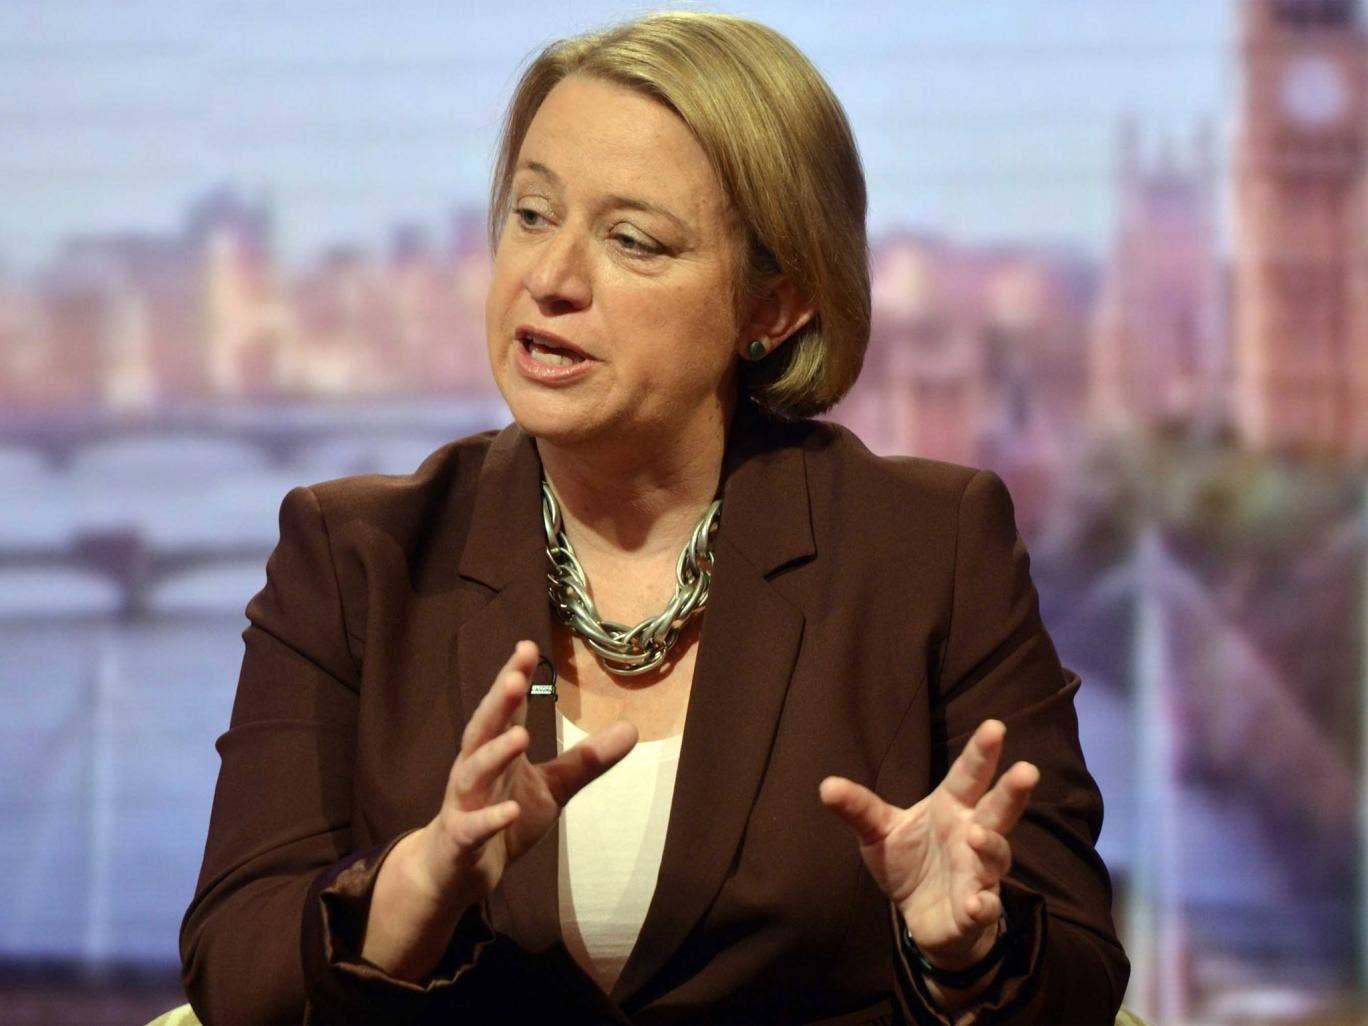 Natalie Bennett leader of the Green Party of England and Wales appears on the 'Andrew Marr Show' last month